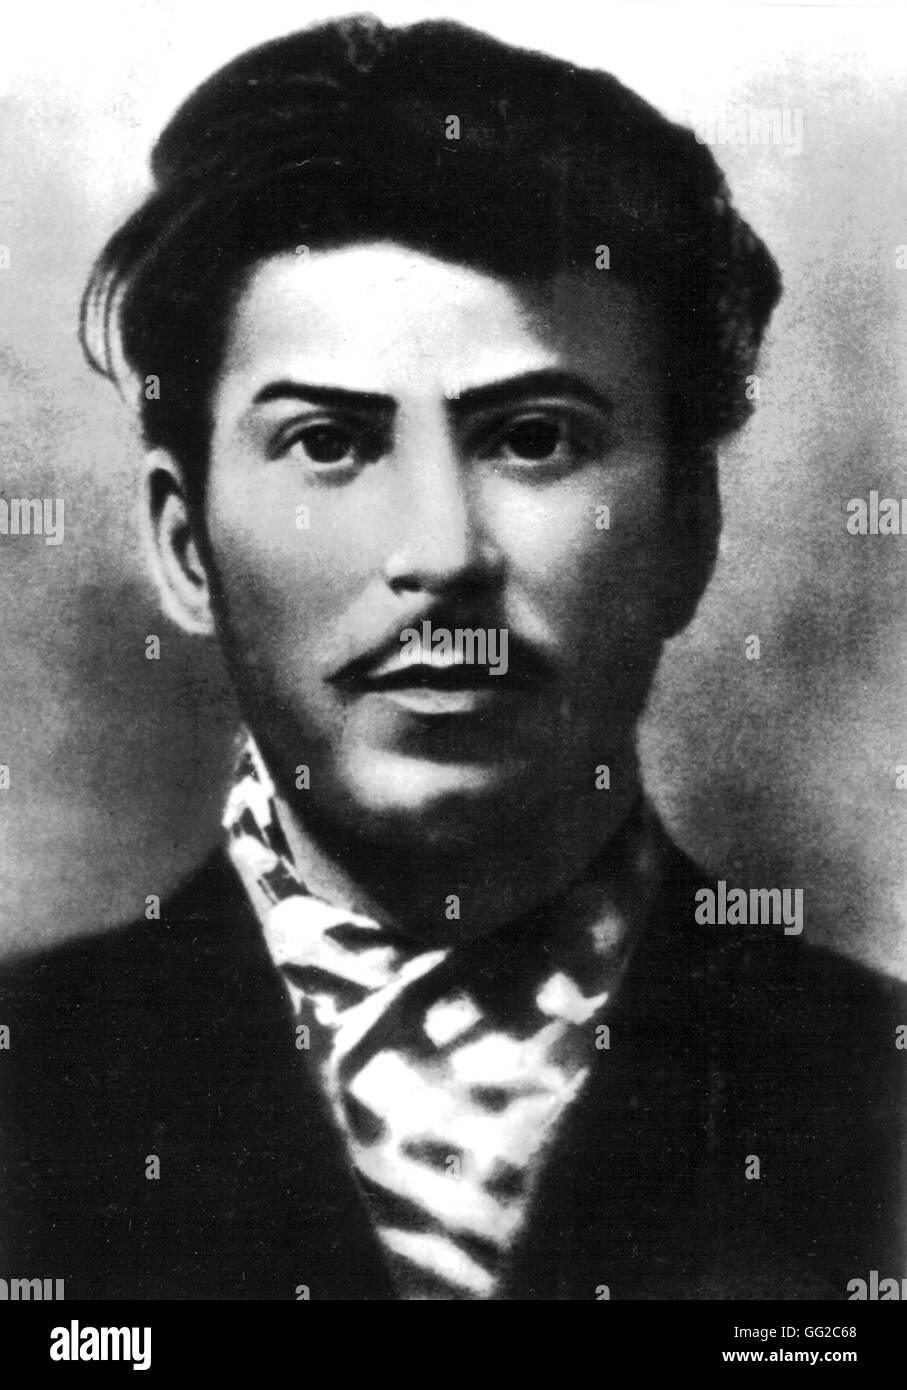 Stalin, leader of the armed uprisings in Transcaucasia, during the first bourgeoise democratic revolution. 1905 - Stock Image